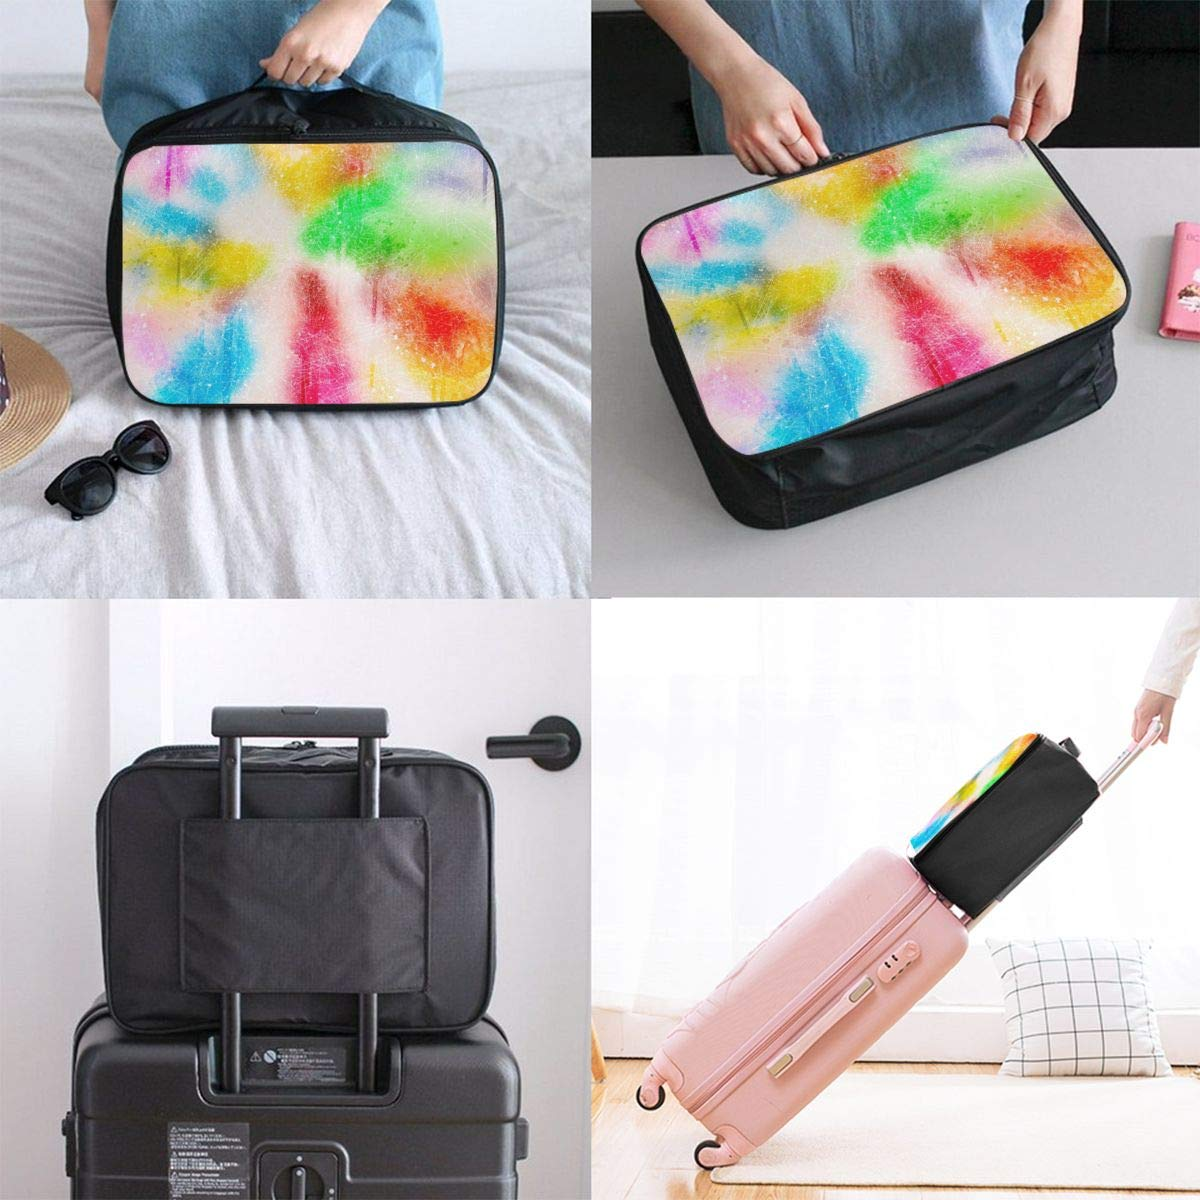 Watercolor Colorful Art Travel Lightweight Waterproof Foldable Storage Carry Luggage Large Capacity Portable Luggage Bag Duffel Bag